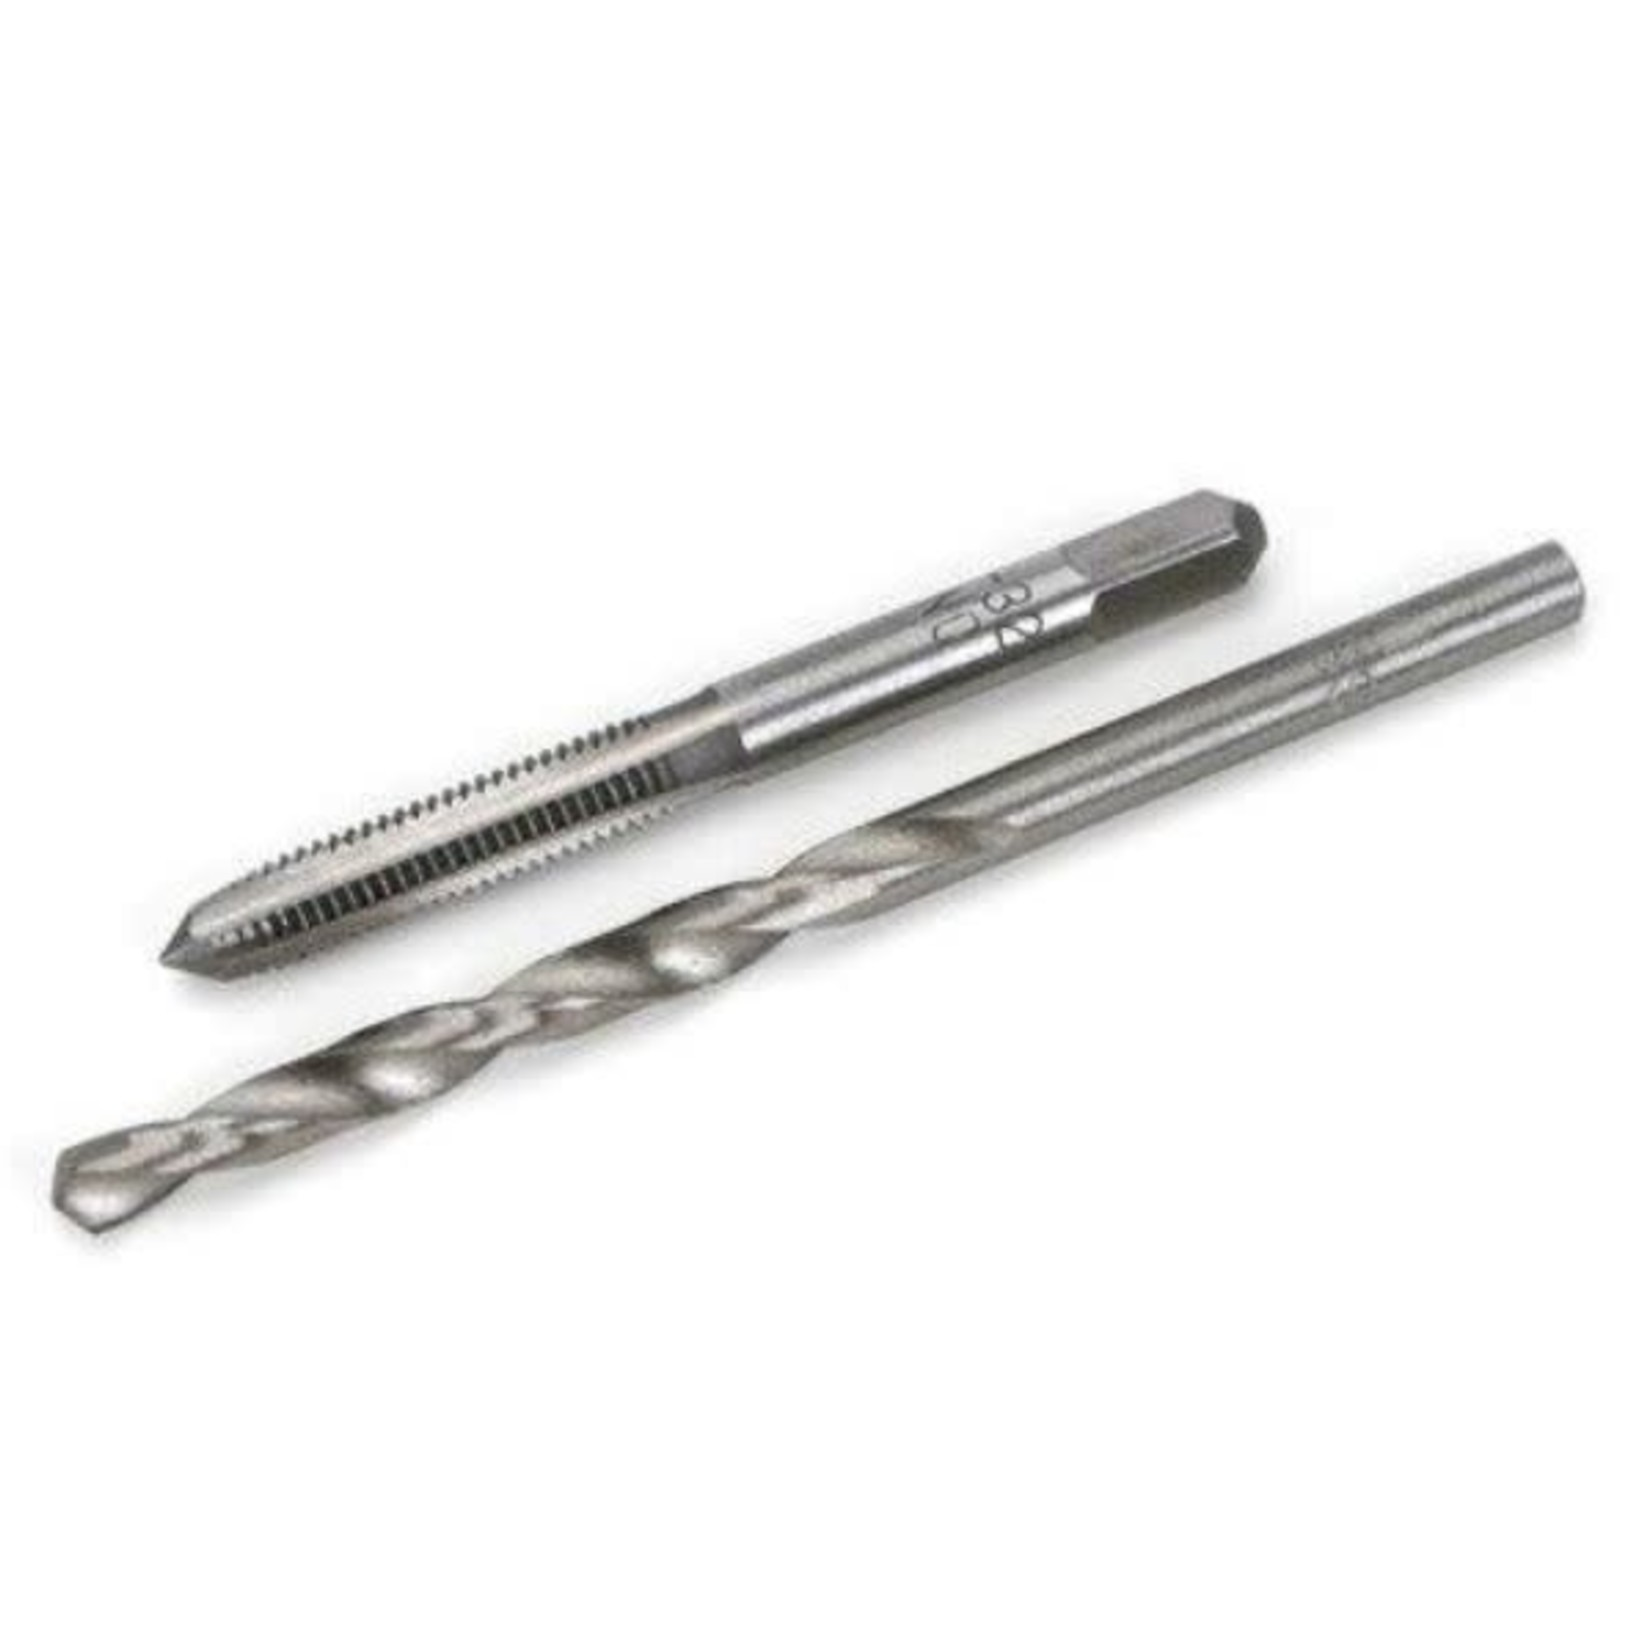 Dubro DUB362 Dubro 6-32 Tap And Drill Set